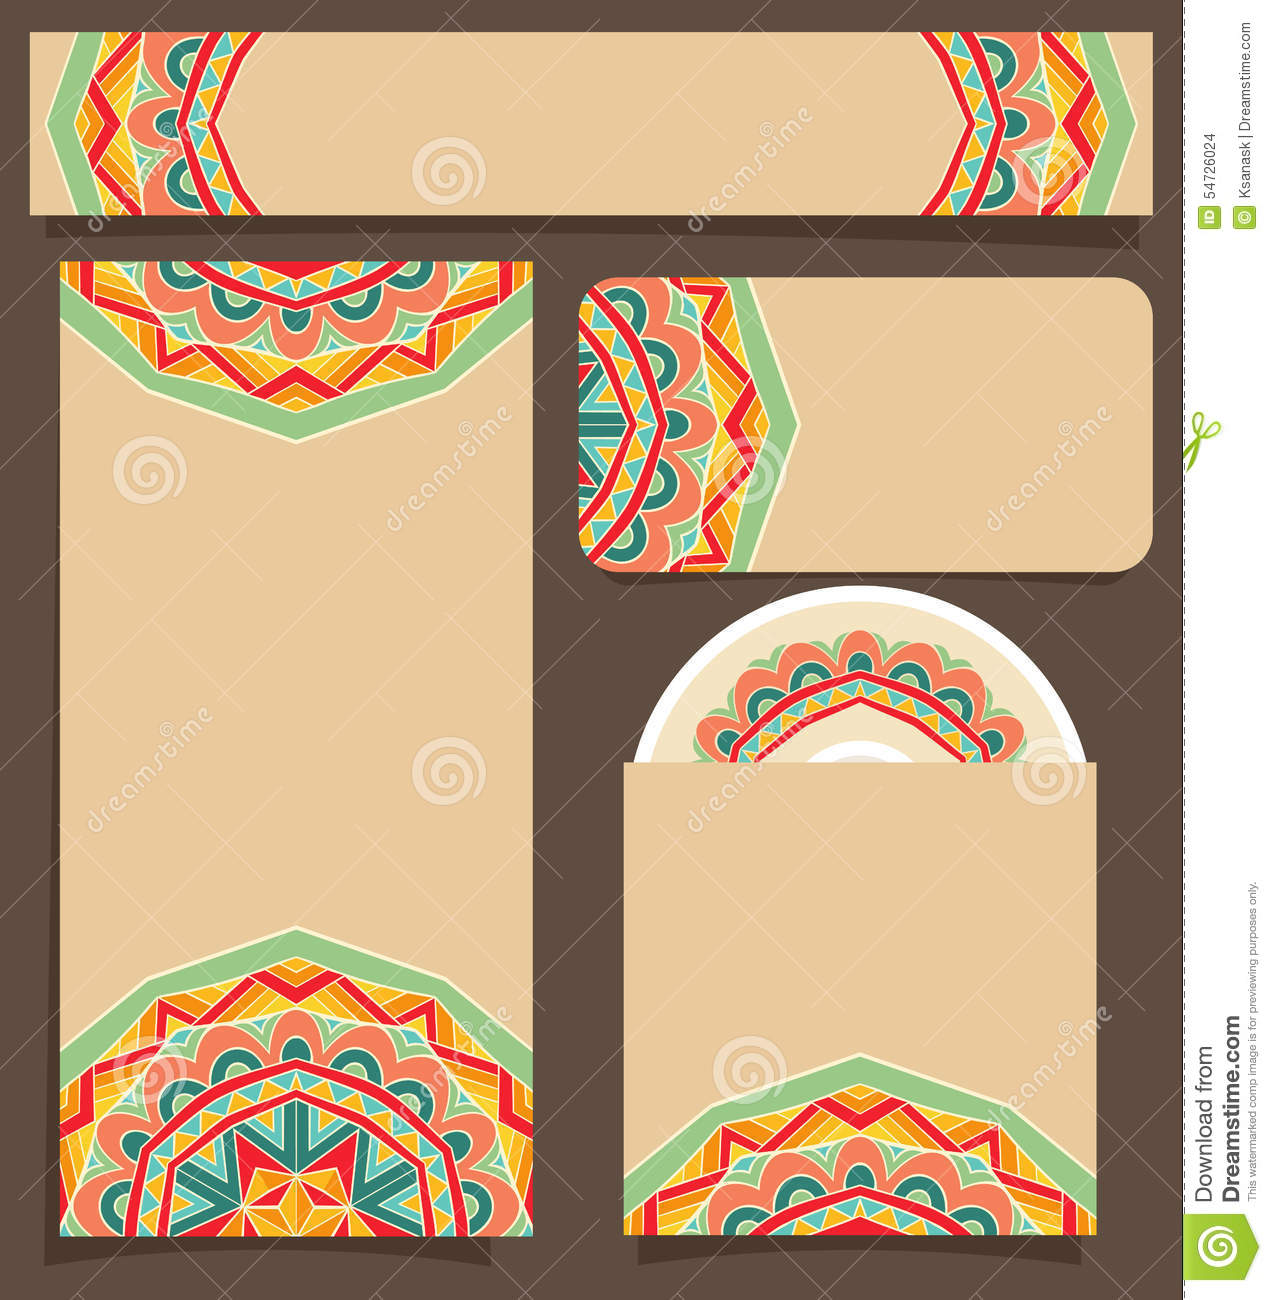 Branding Design With Festive Mexican Pattern Stock Vector ...